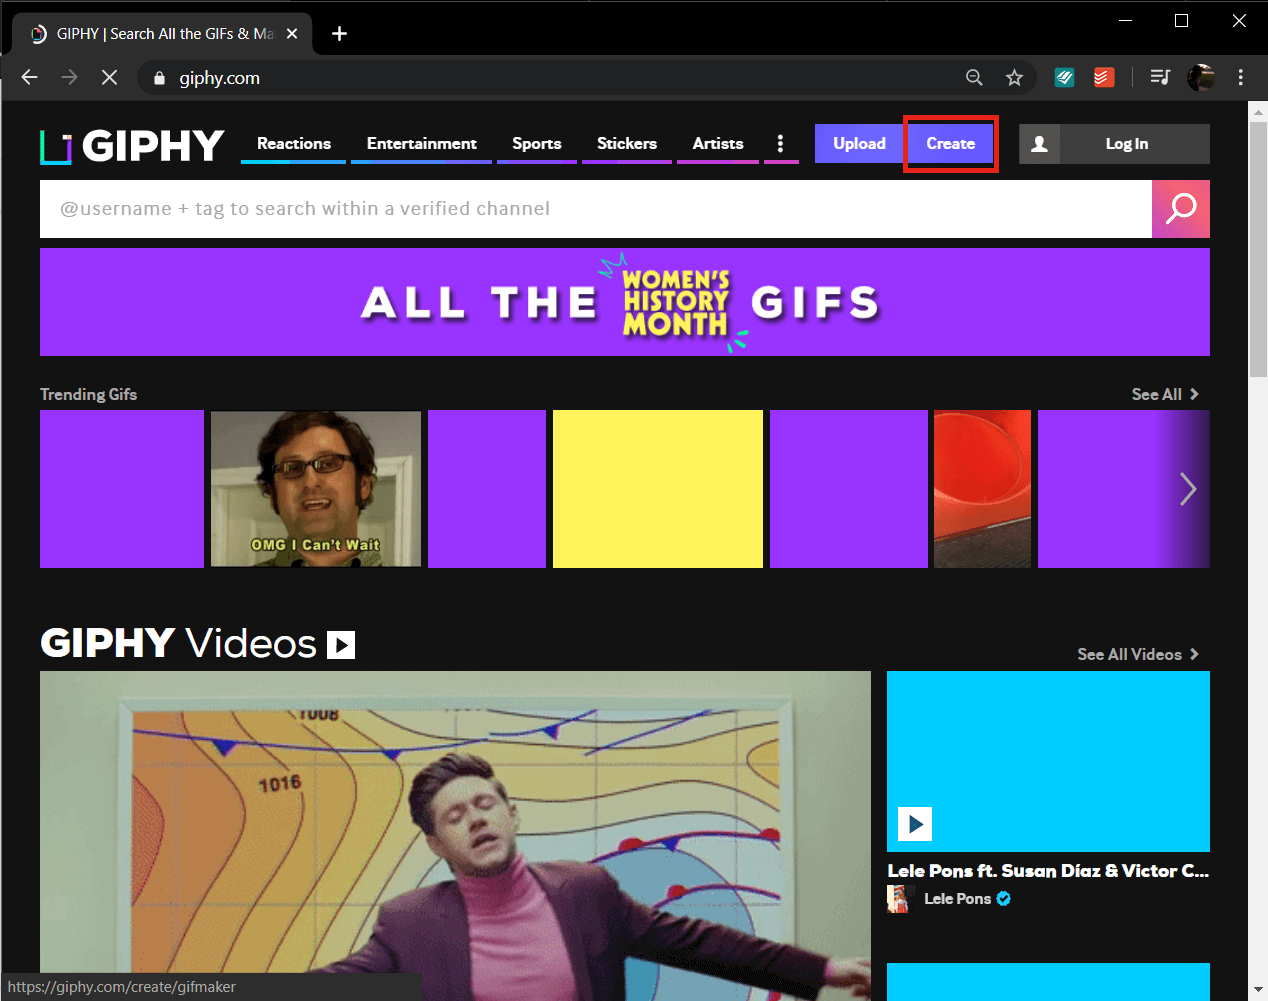 On the top right side look for the option to Create a GIF and click on it